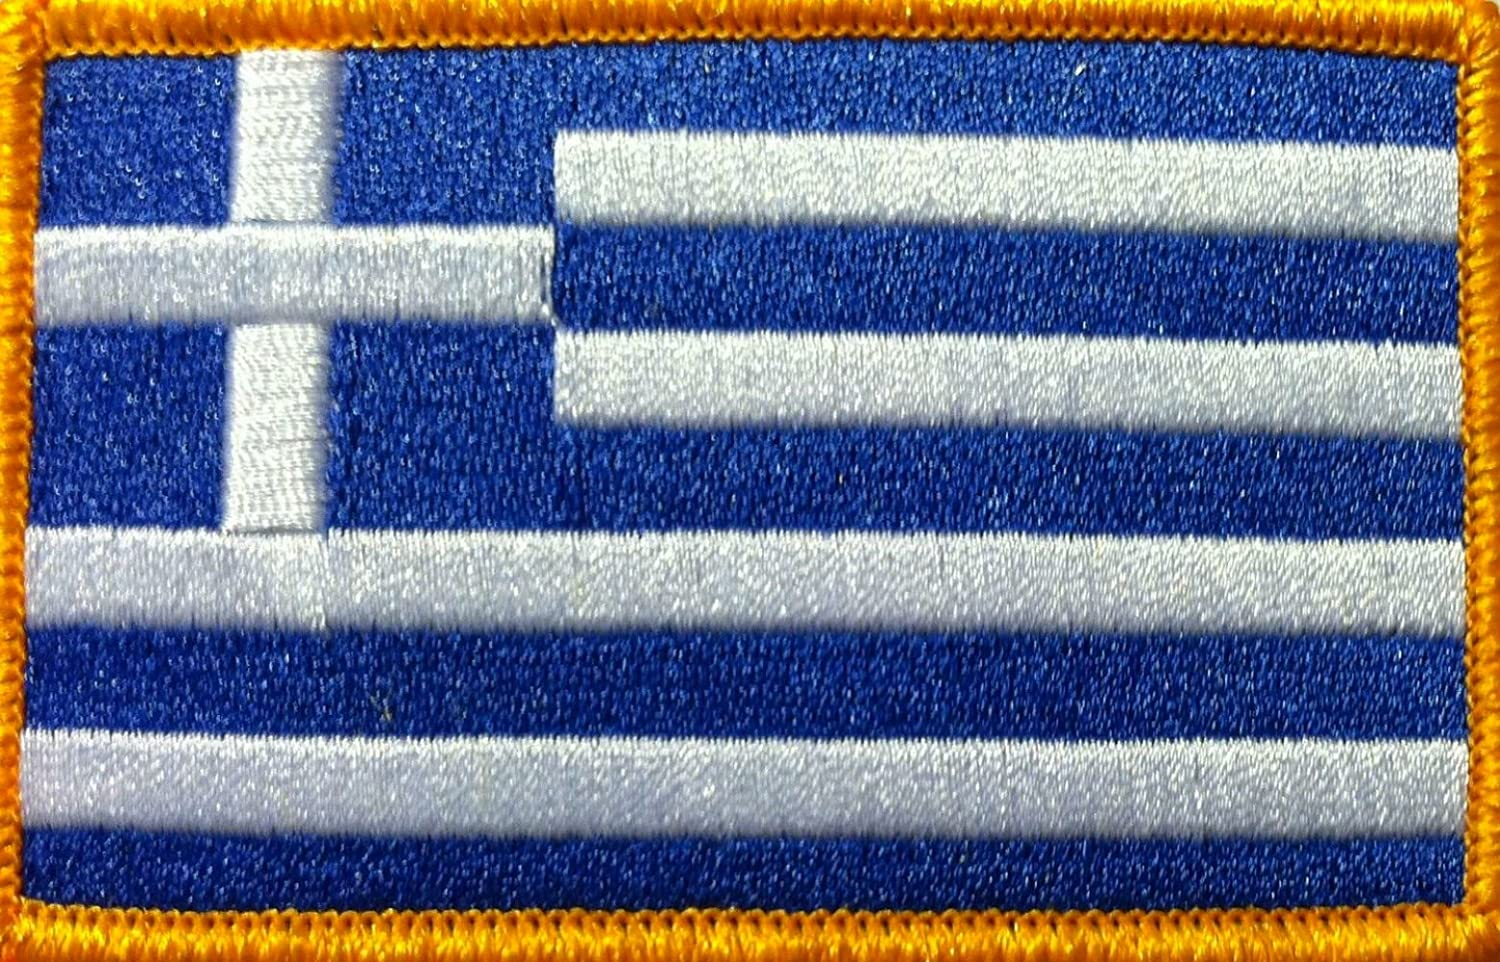 Greece Emblem Greek Flag On Embroidered Applique Patch {Blue Single Count and Gold Colors} Custom and Unique White 3 1//2 by 2 1//4 Inches